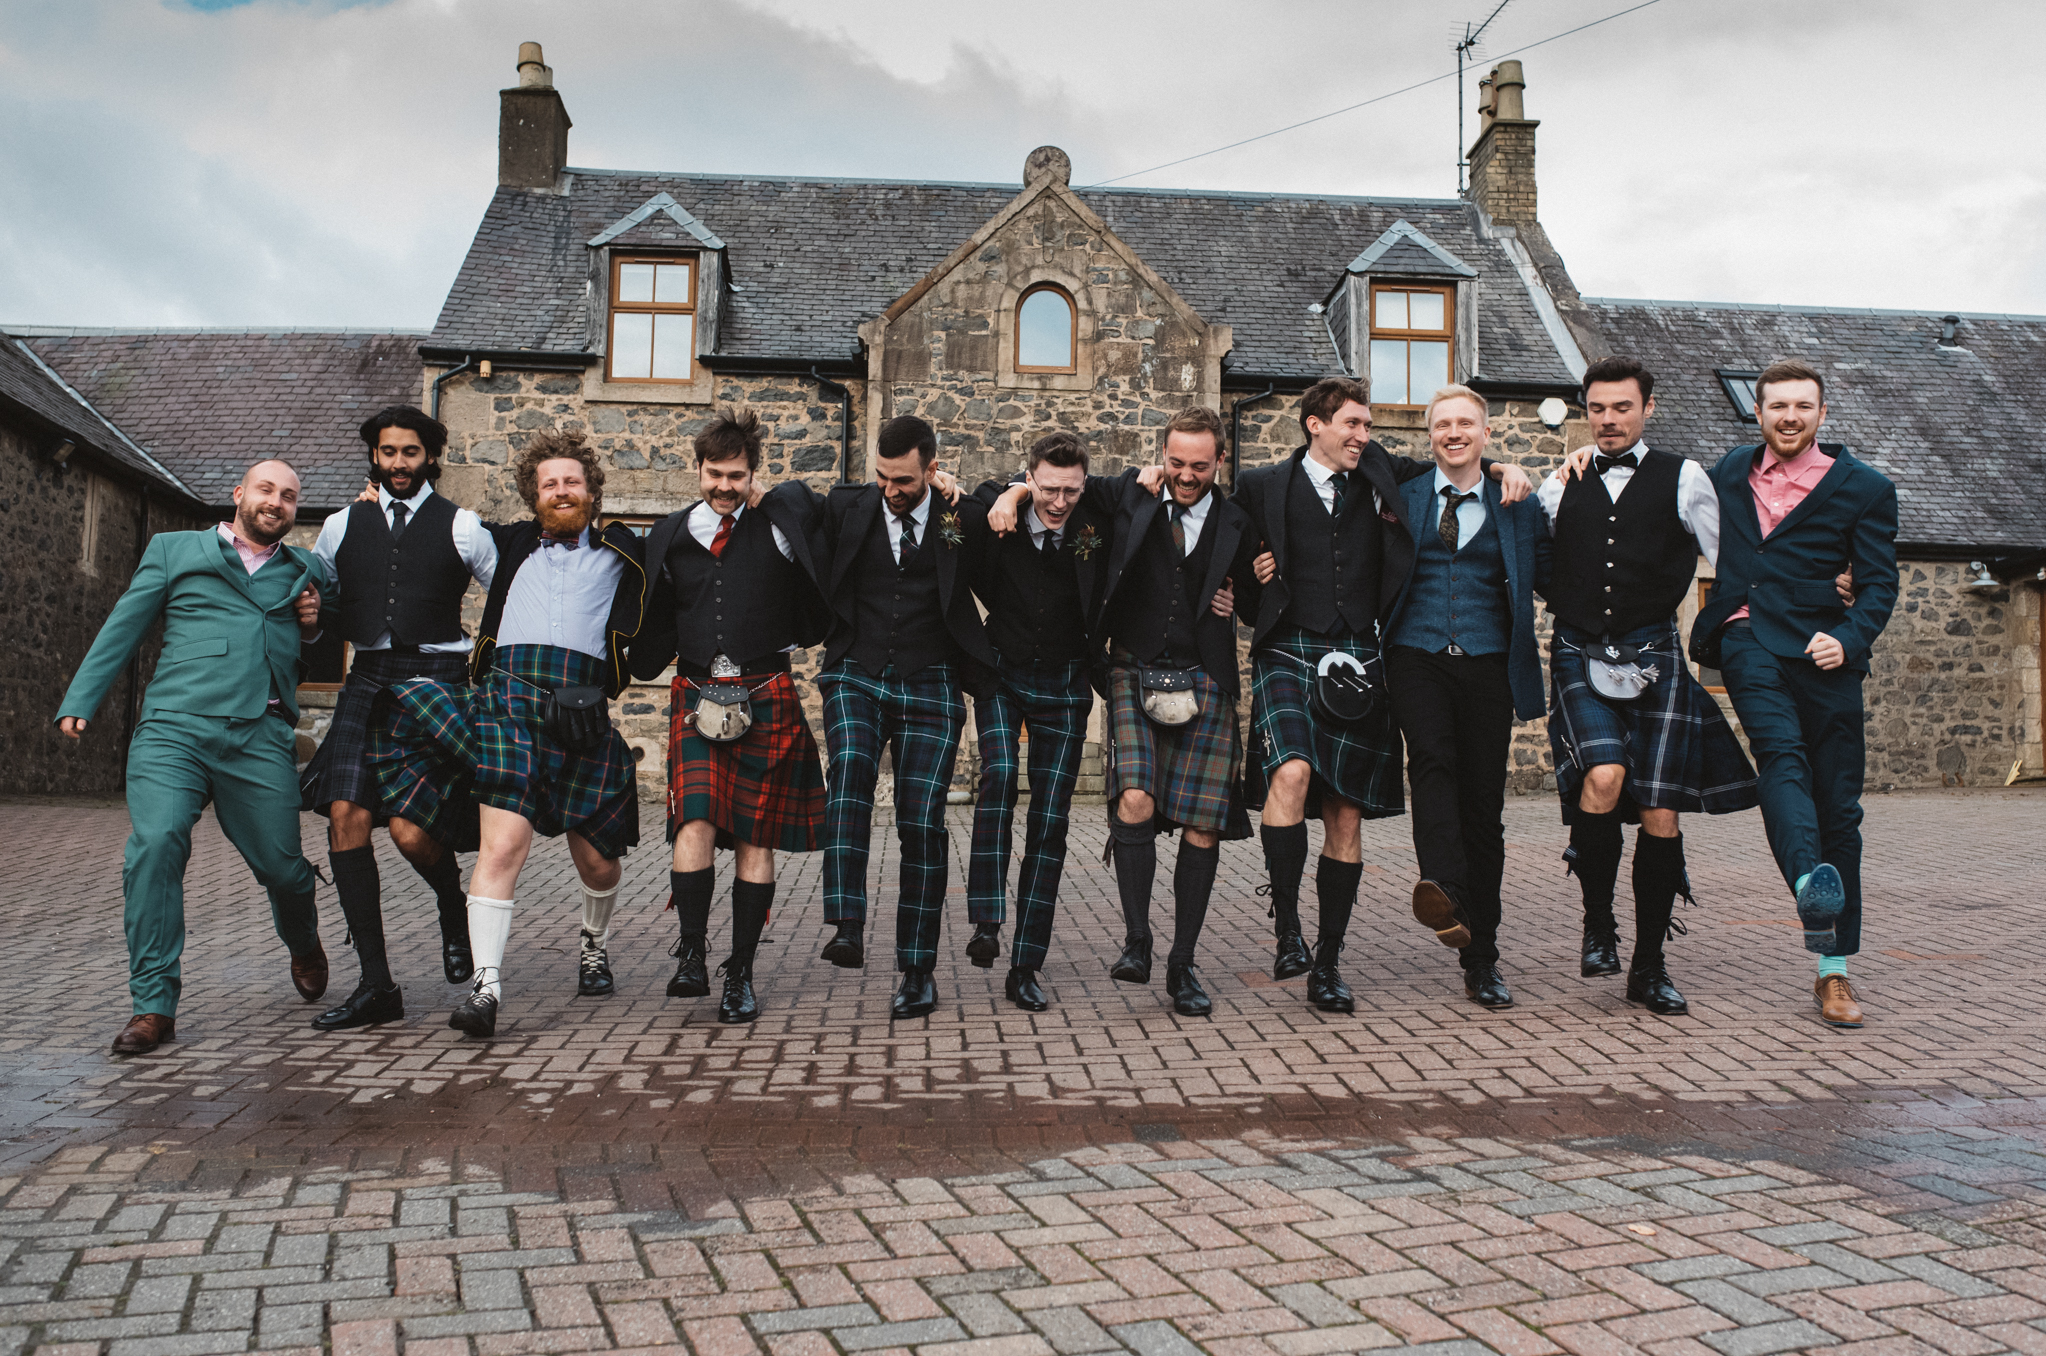 men in kilts at wedding in Glasgow